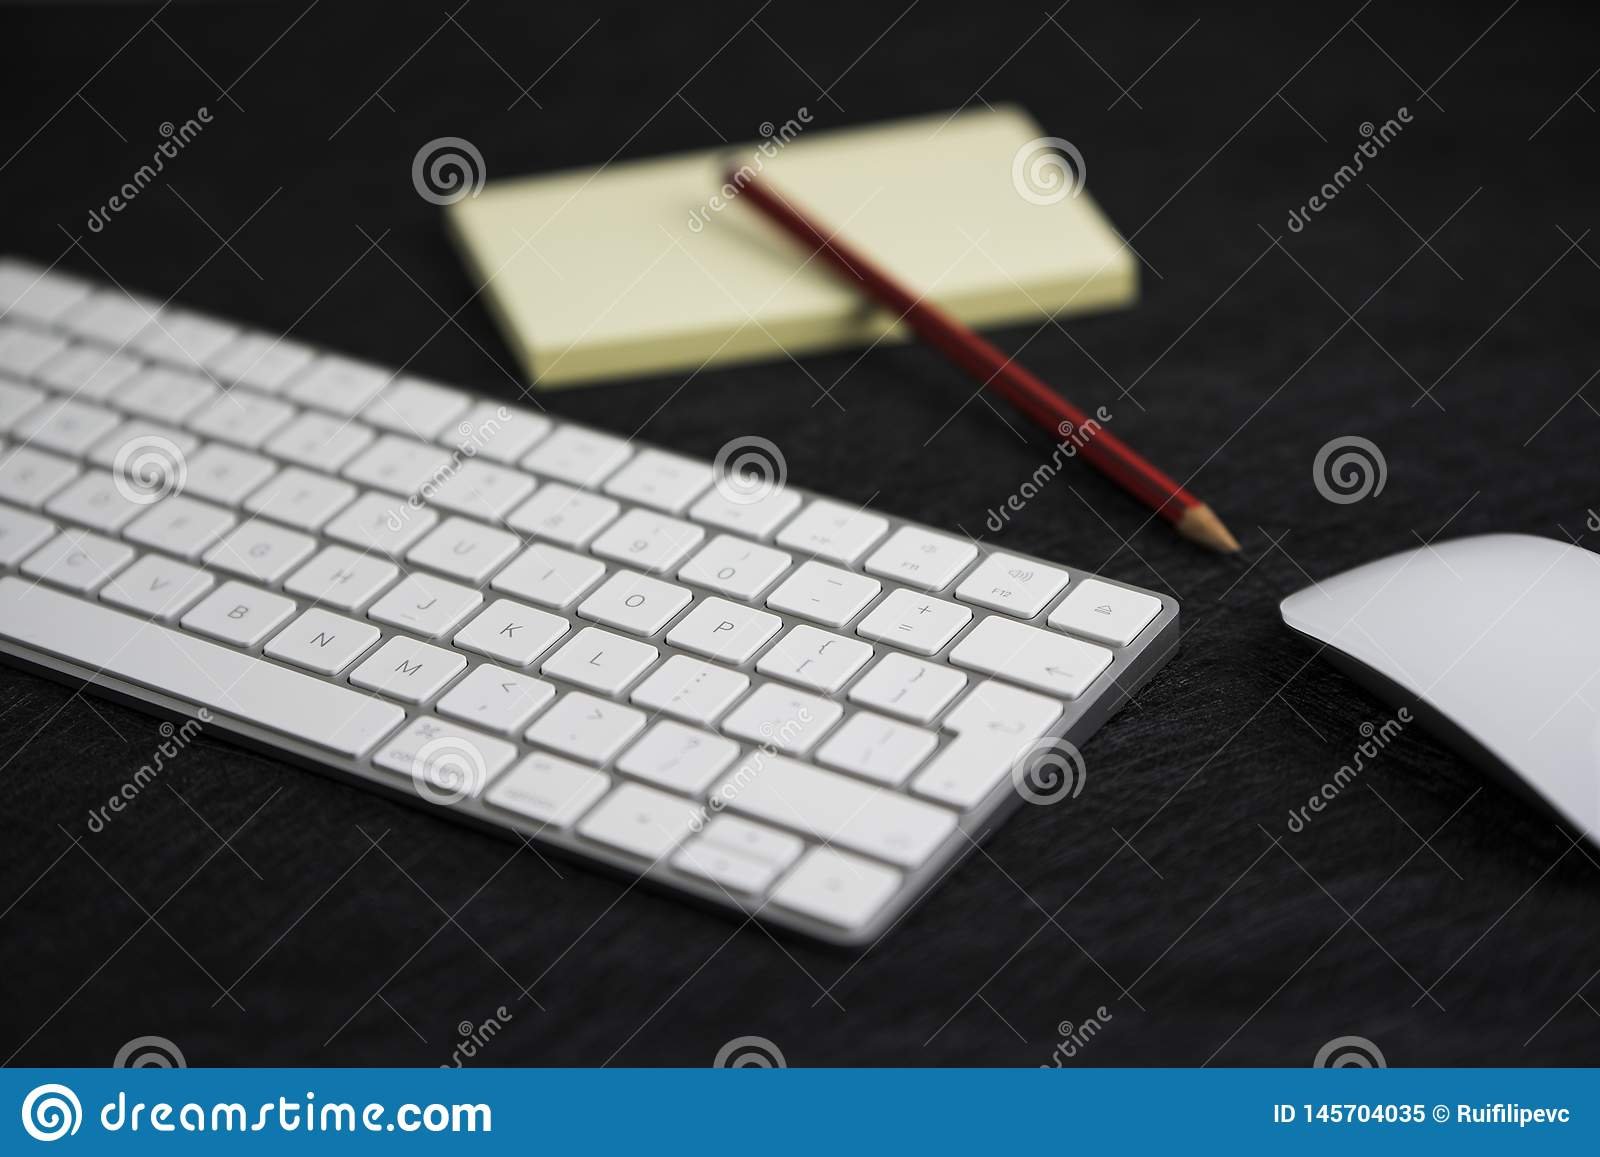 Textured black board with a pencil on a paper, a keyboard and a mouse